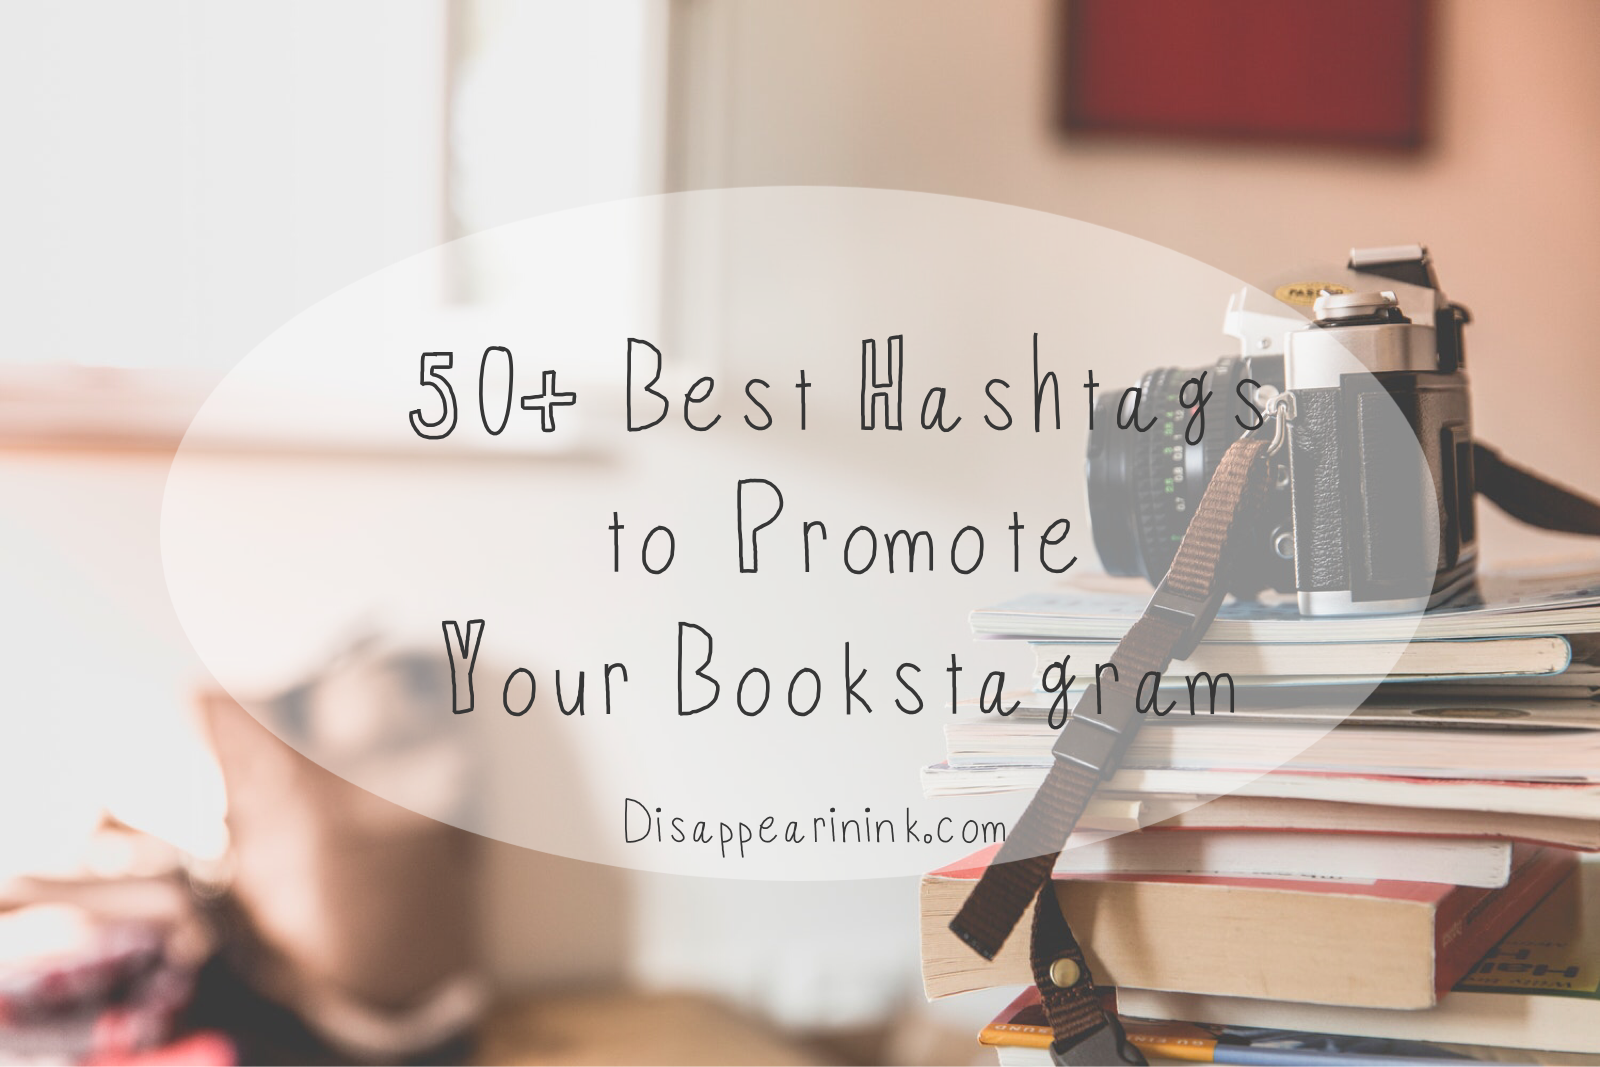 50+ Best Hashtags To Promote Your Bookstagram